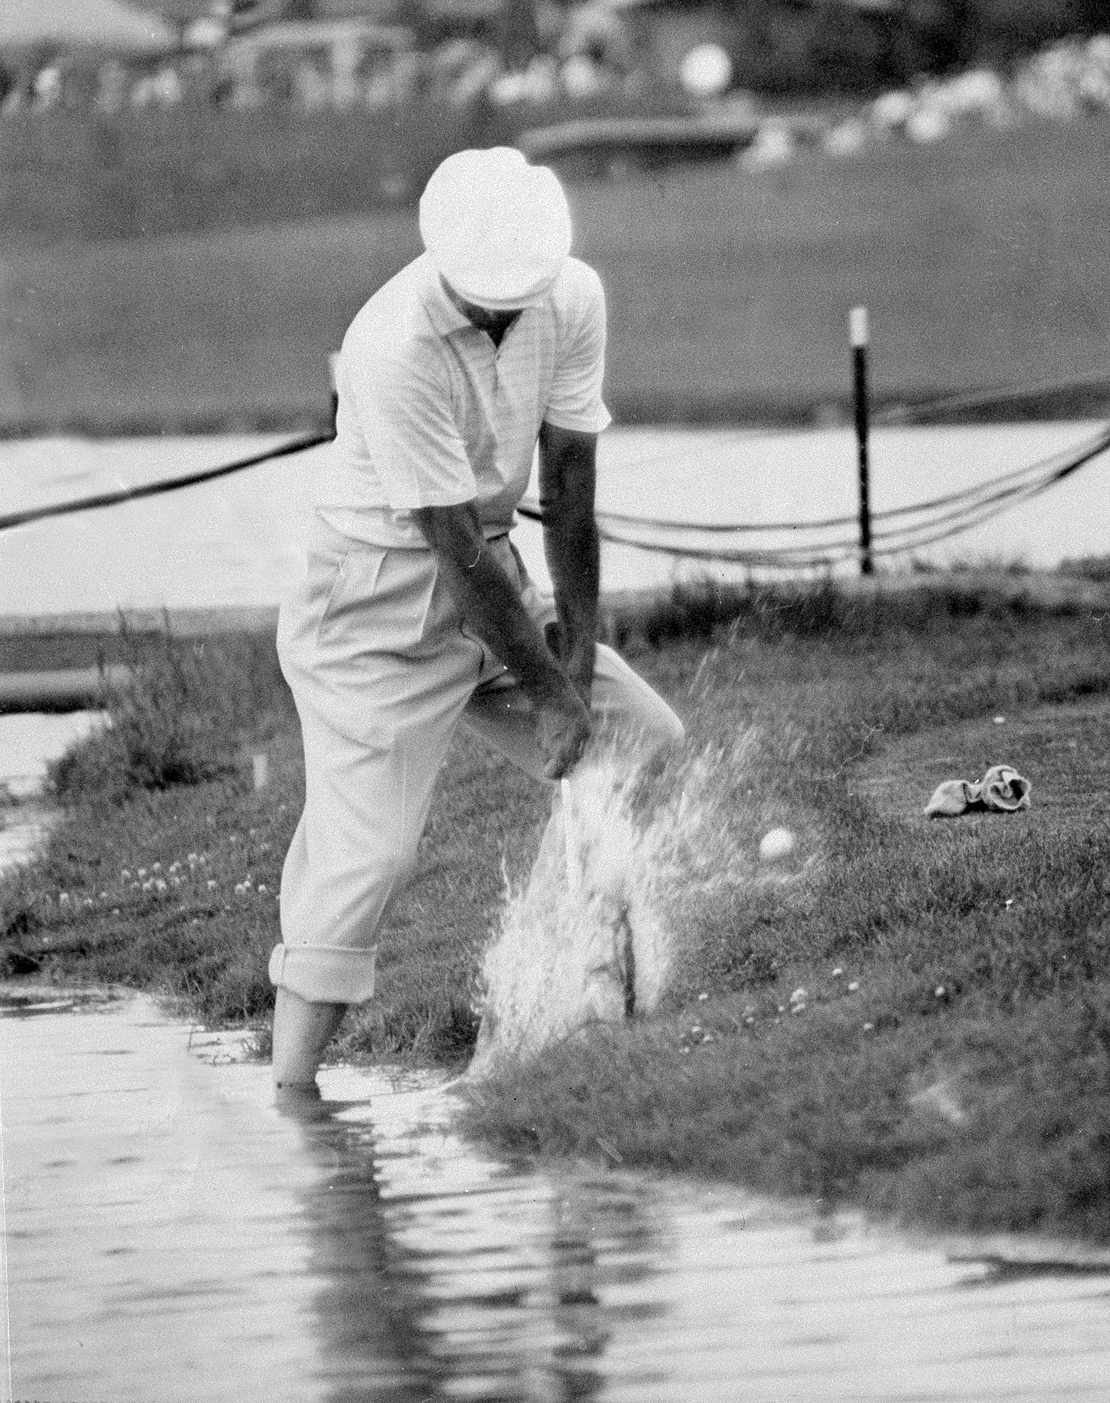 Ben Hogan's quest for a fifth U.S. Open title comes to a splashing halt at Cherry Hills' fateful 17th.